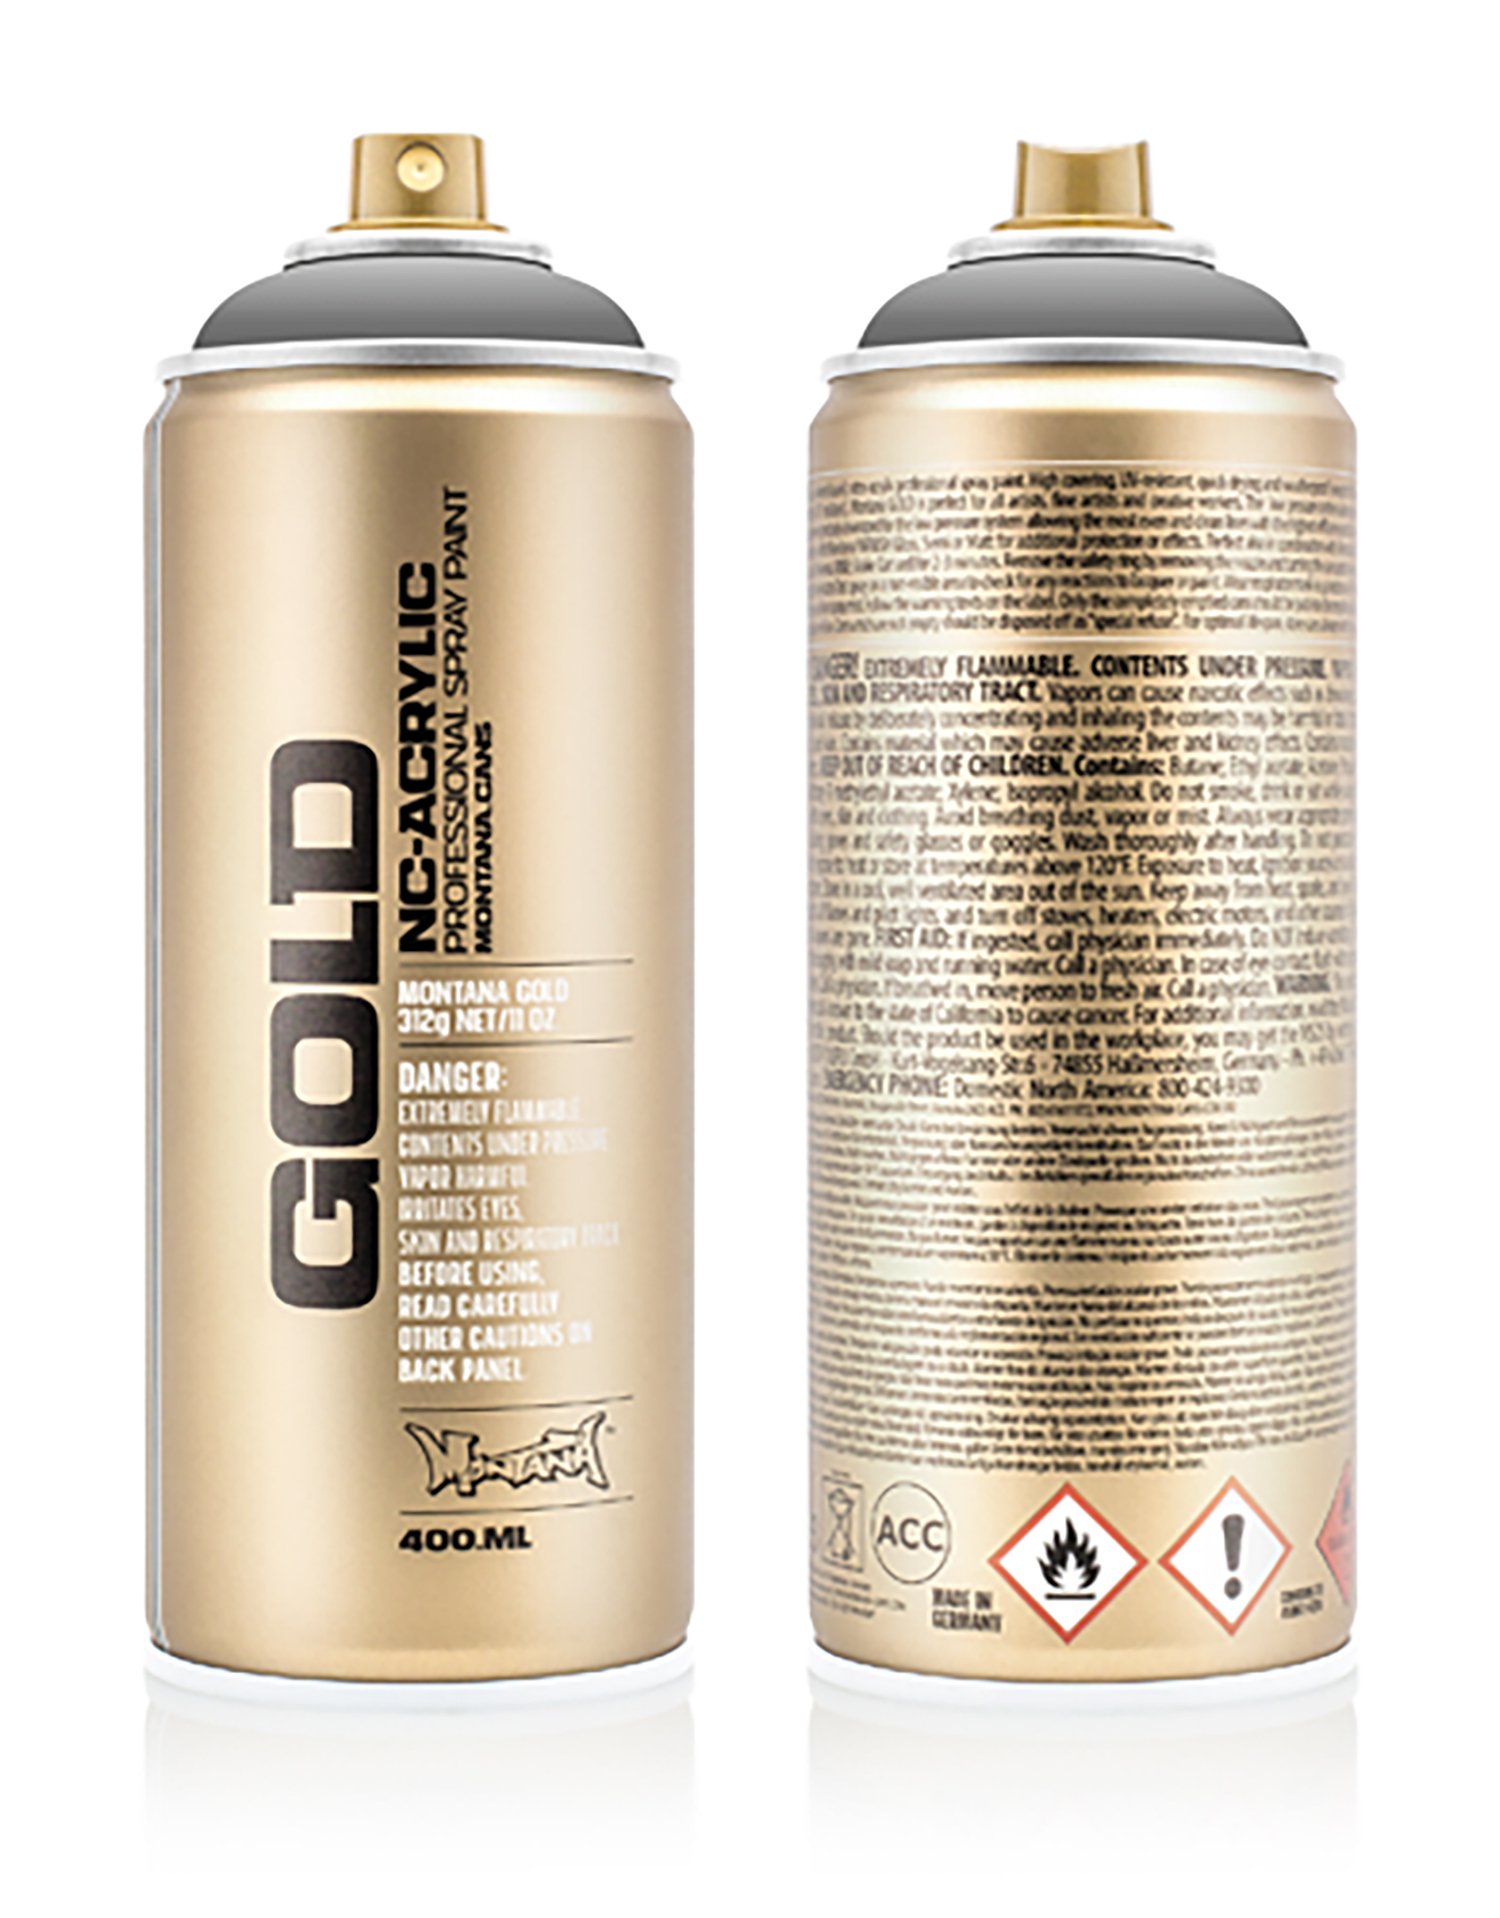 MONTANA-GOLD-SPRAY-400ML-G-7050